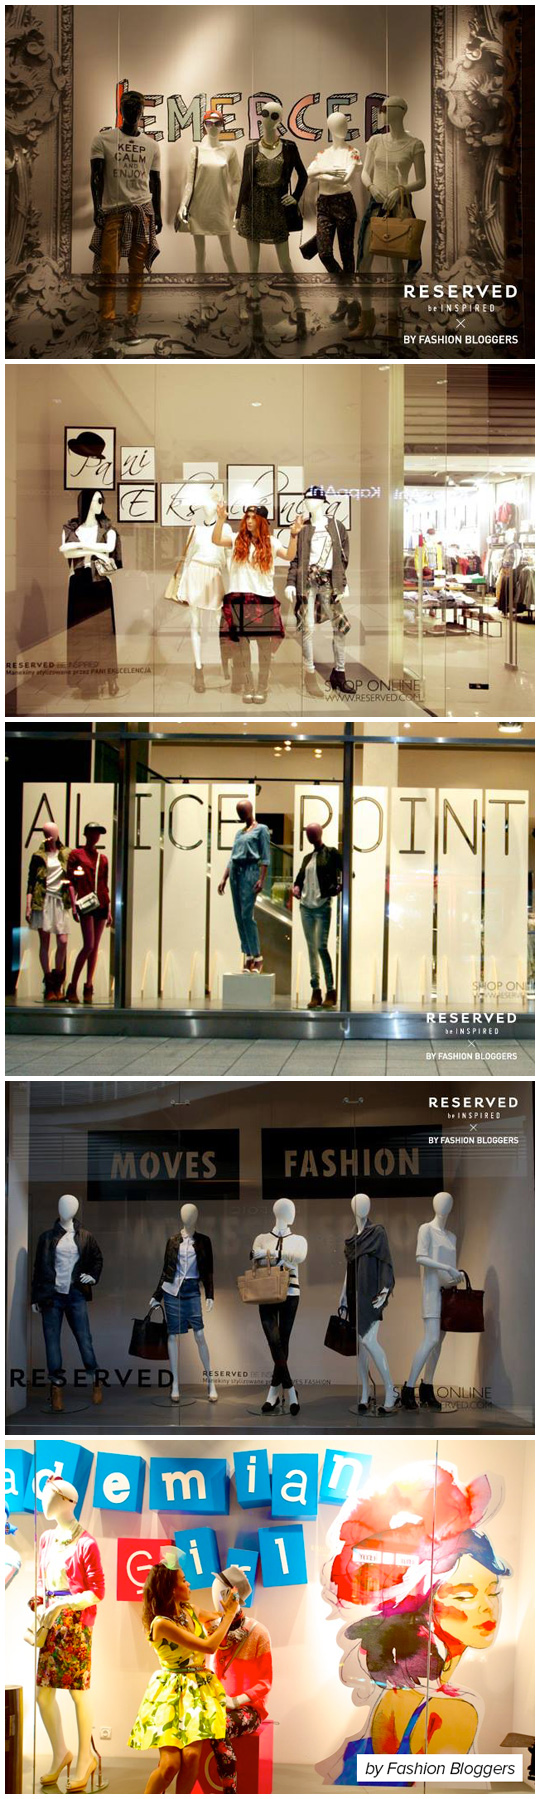 Fashion bloggers dressing Reserved windows